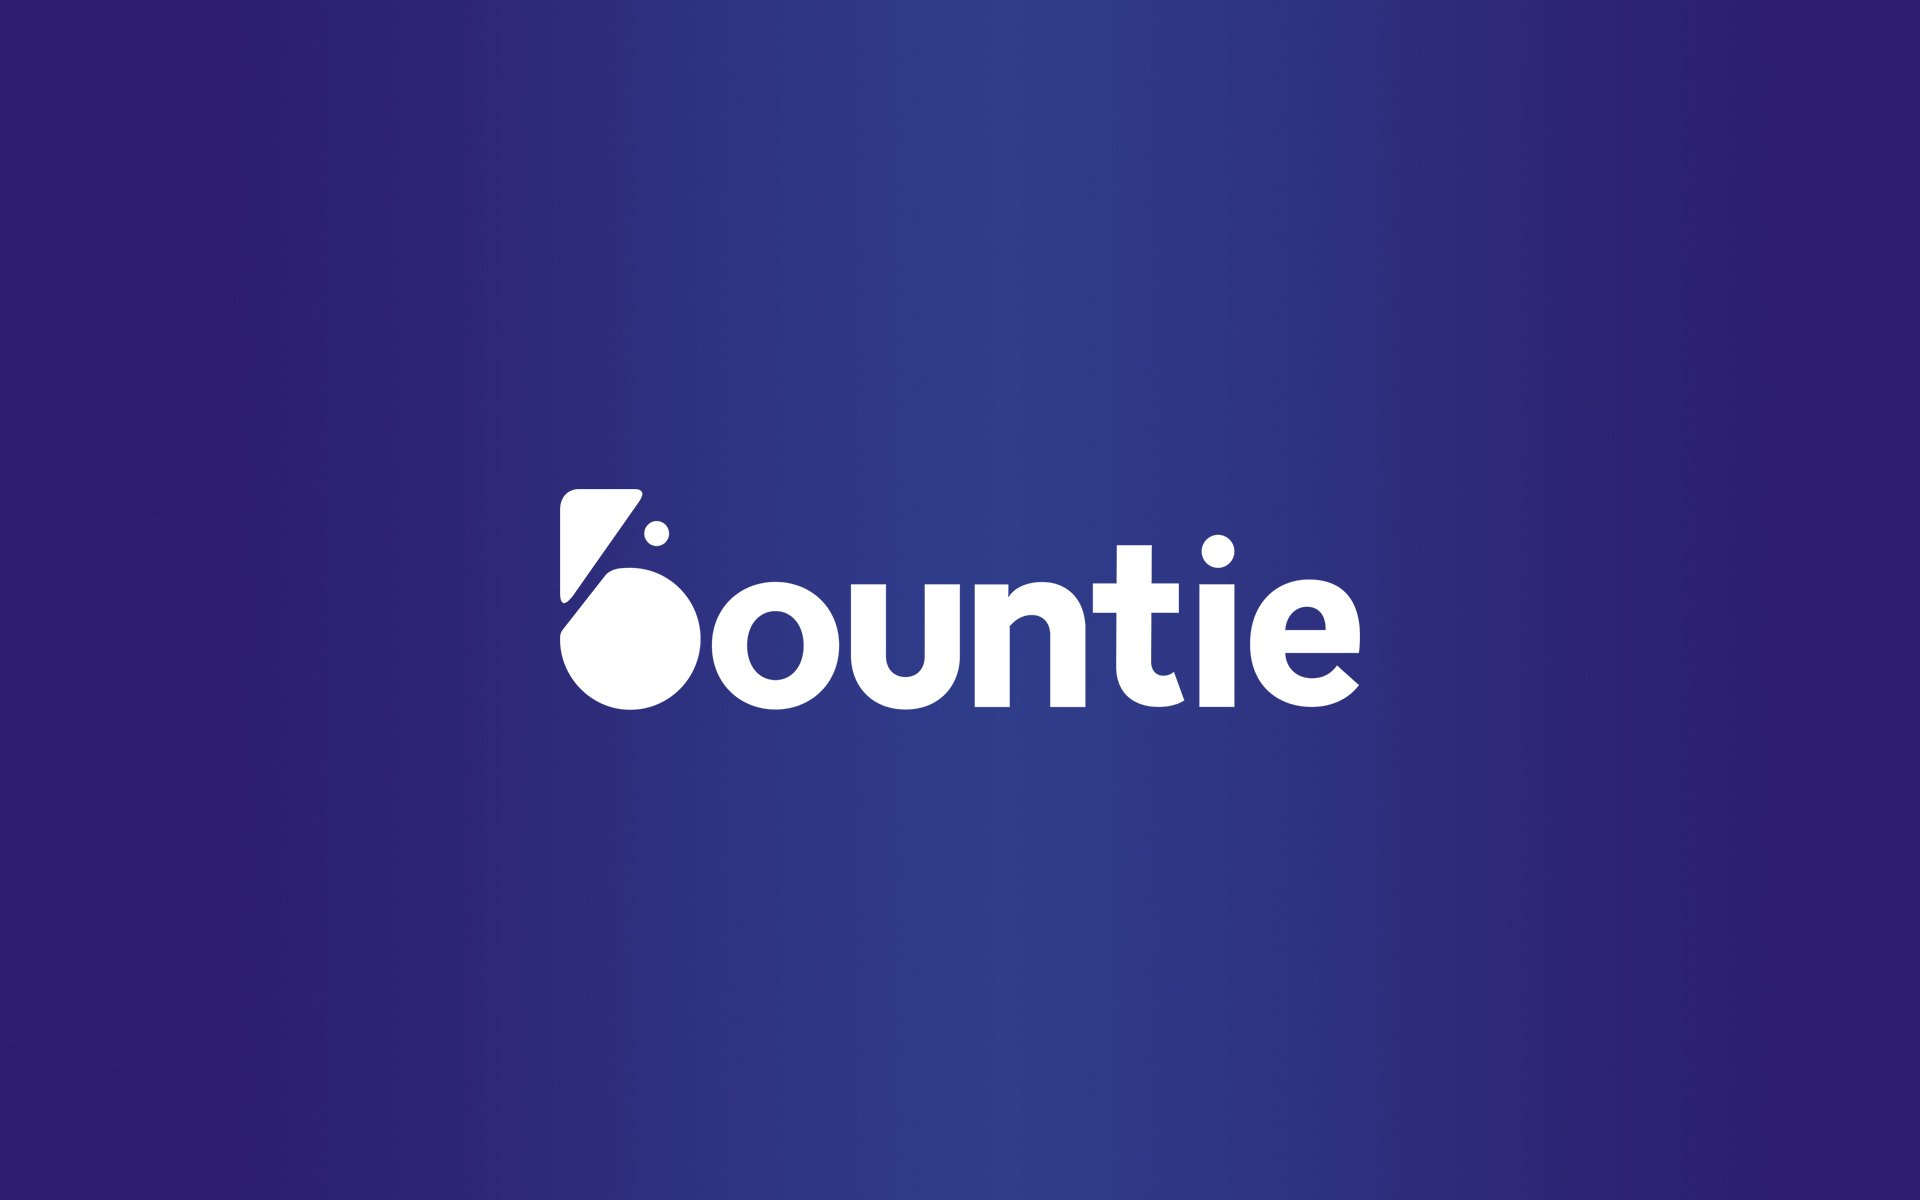 Singapore-Based eSports Platform Bountie Is Launching Their ICO in April 2018 to Enable Gamers to Monetize Their Hobby with Bountie Coins